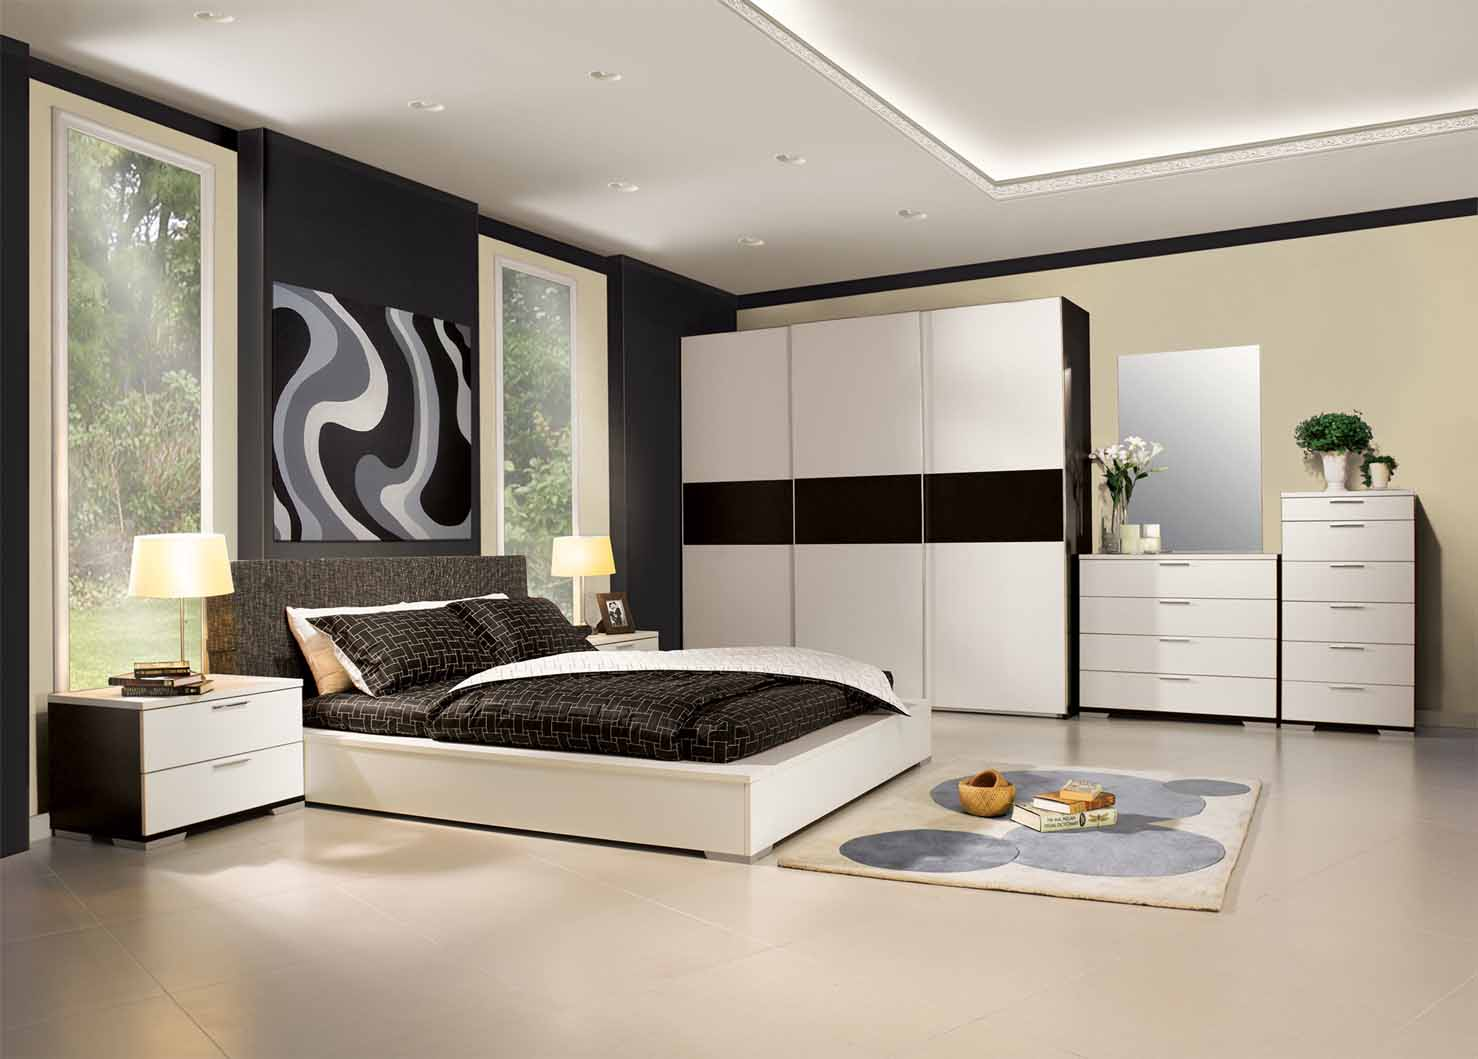 Home interior designs modern bedroom ideas for Home furniture ideas